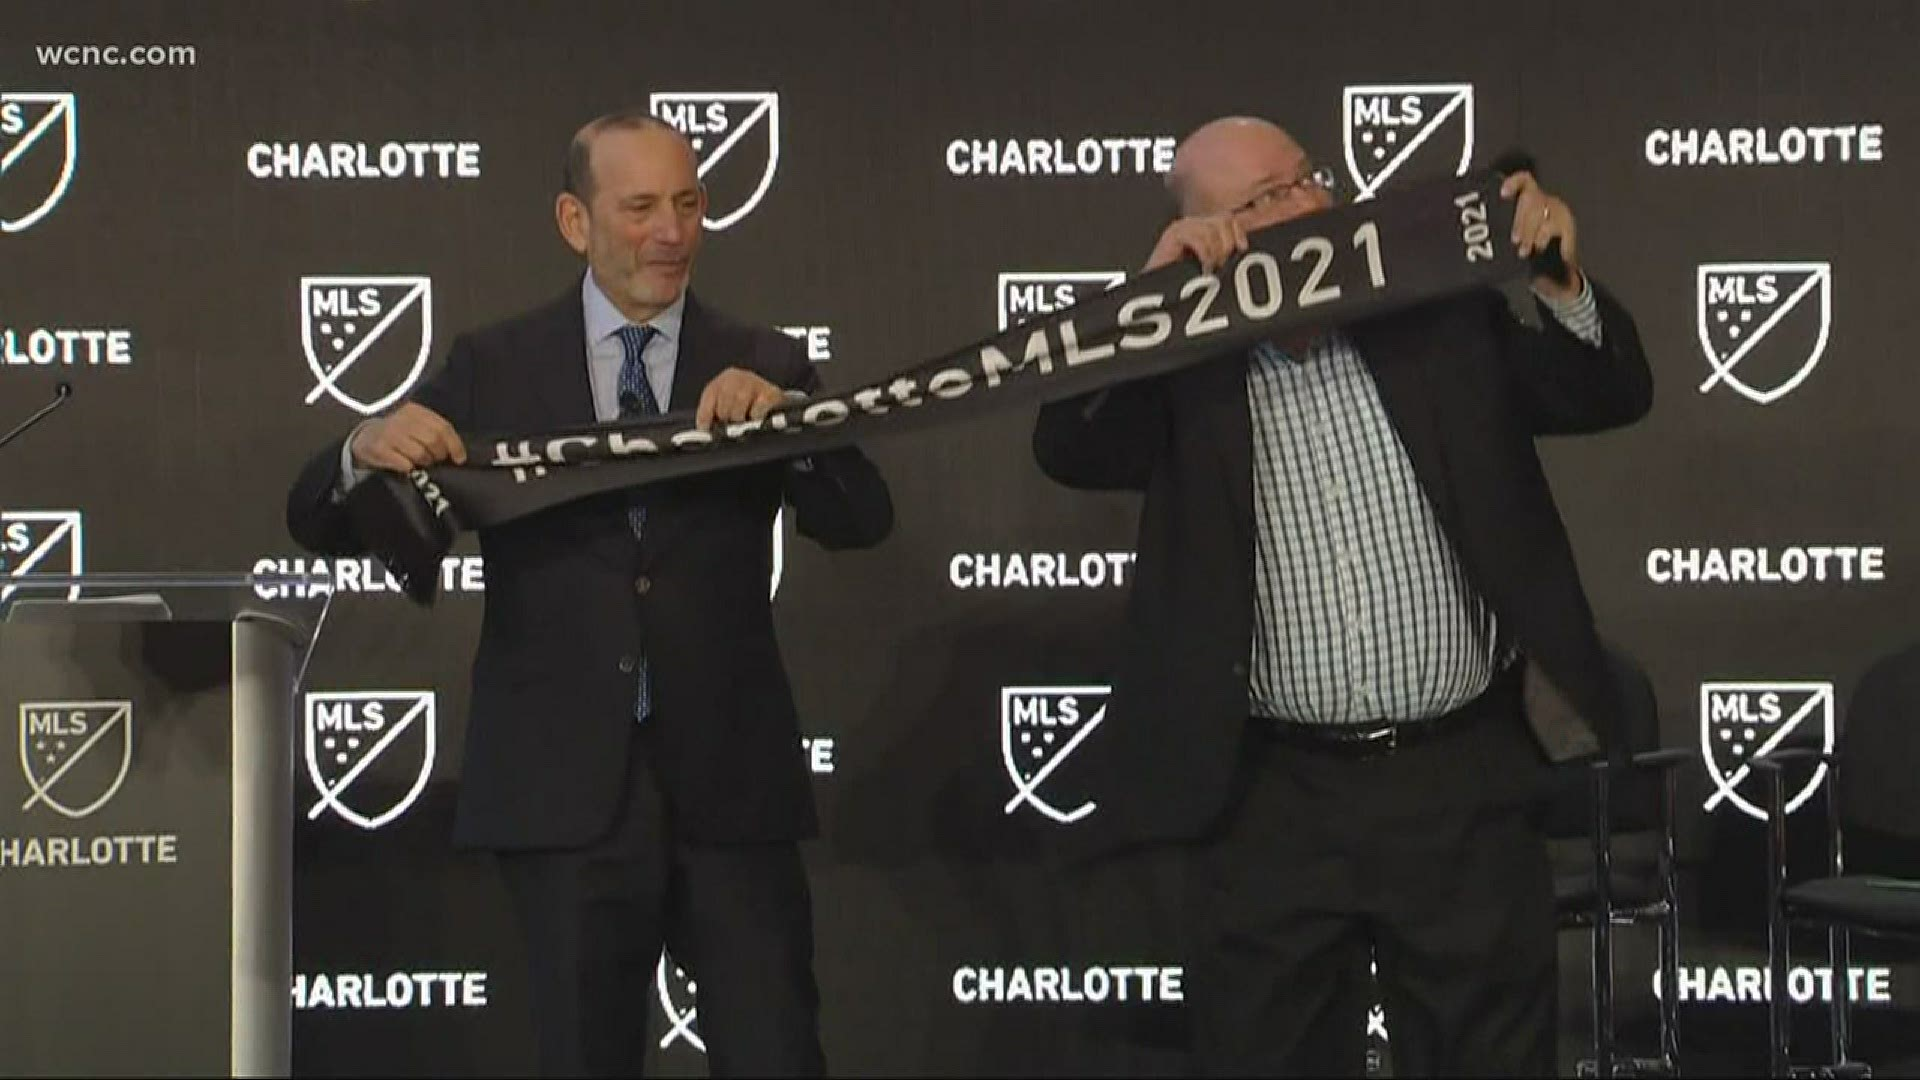 Major League Soccer To Delay Charlotte Mls Launch To 2022 Debut Wcnc Com